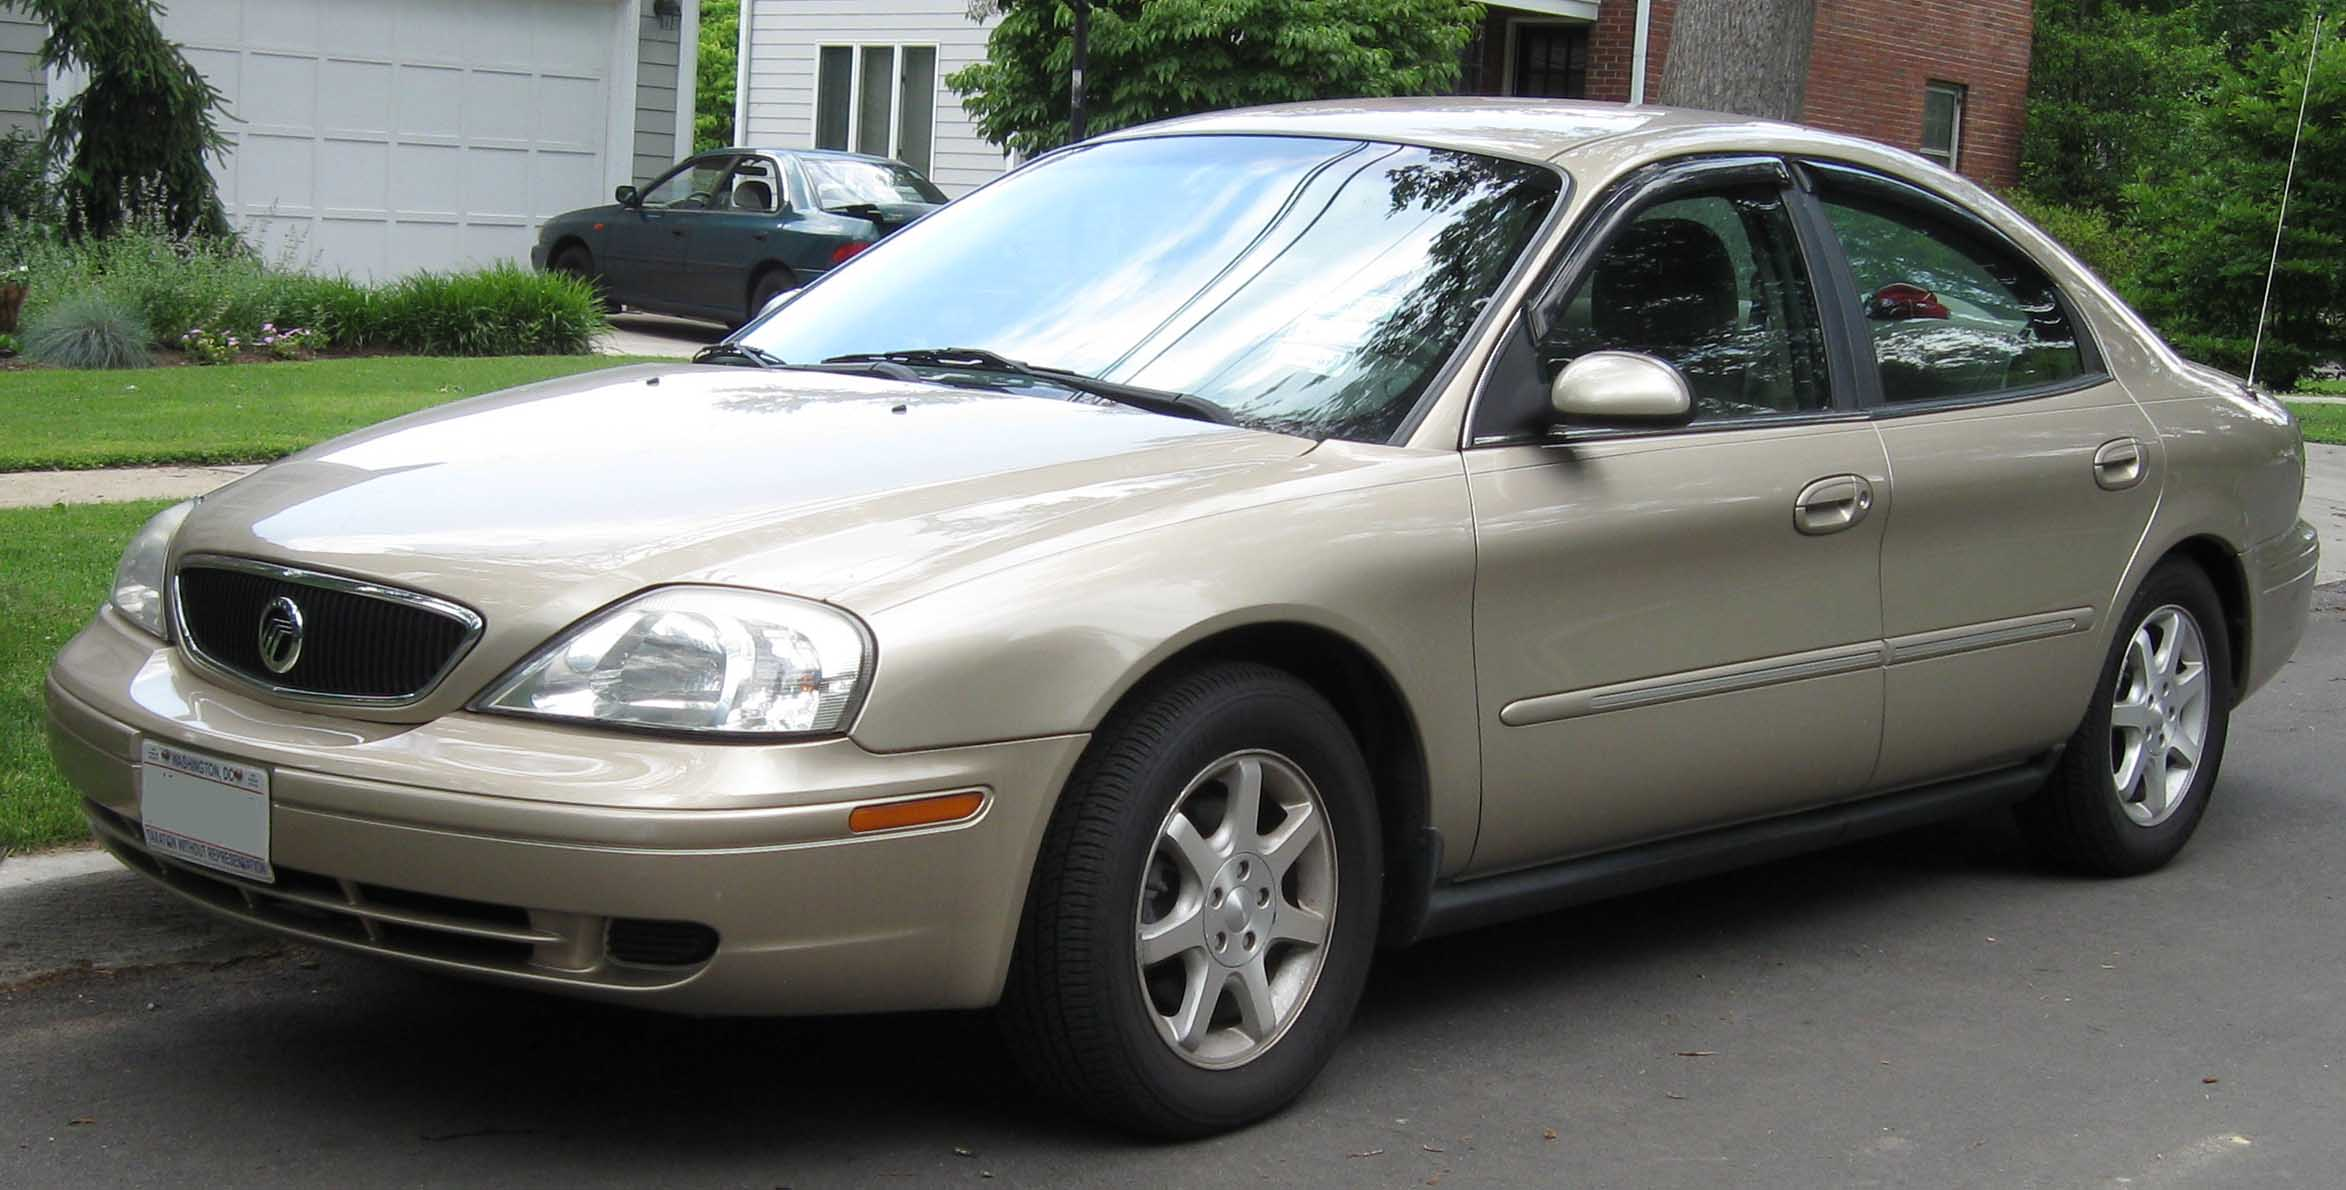 Cars mercury sable #1